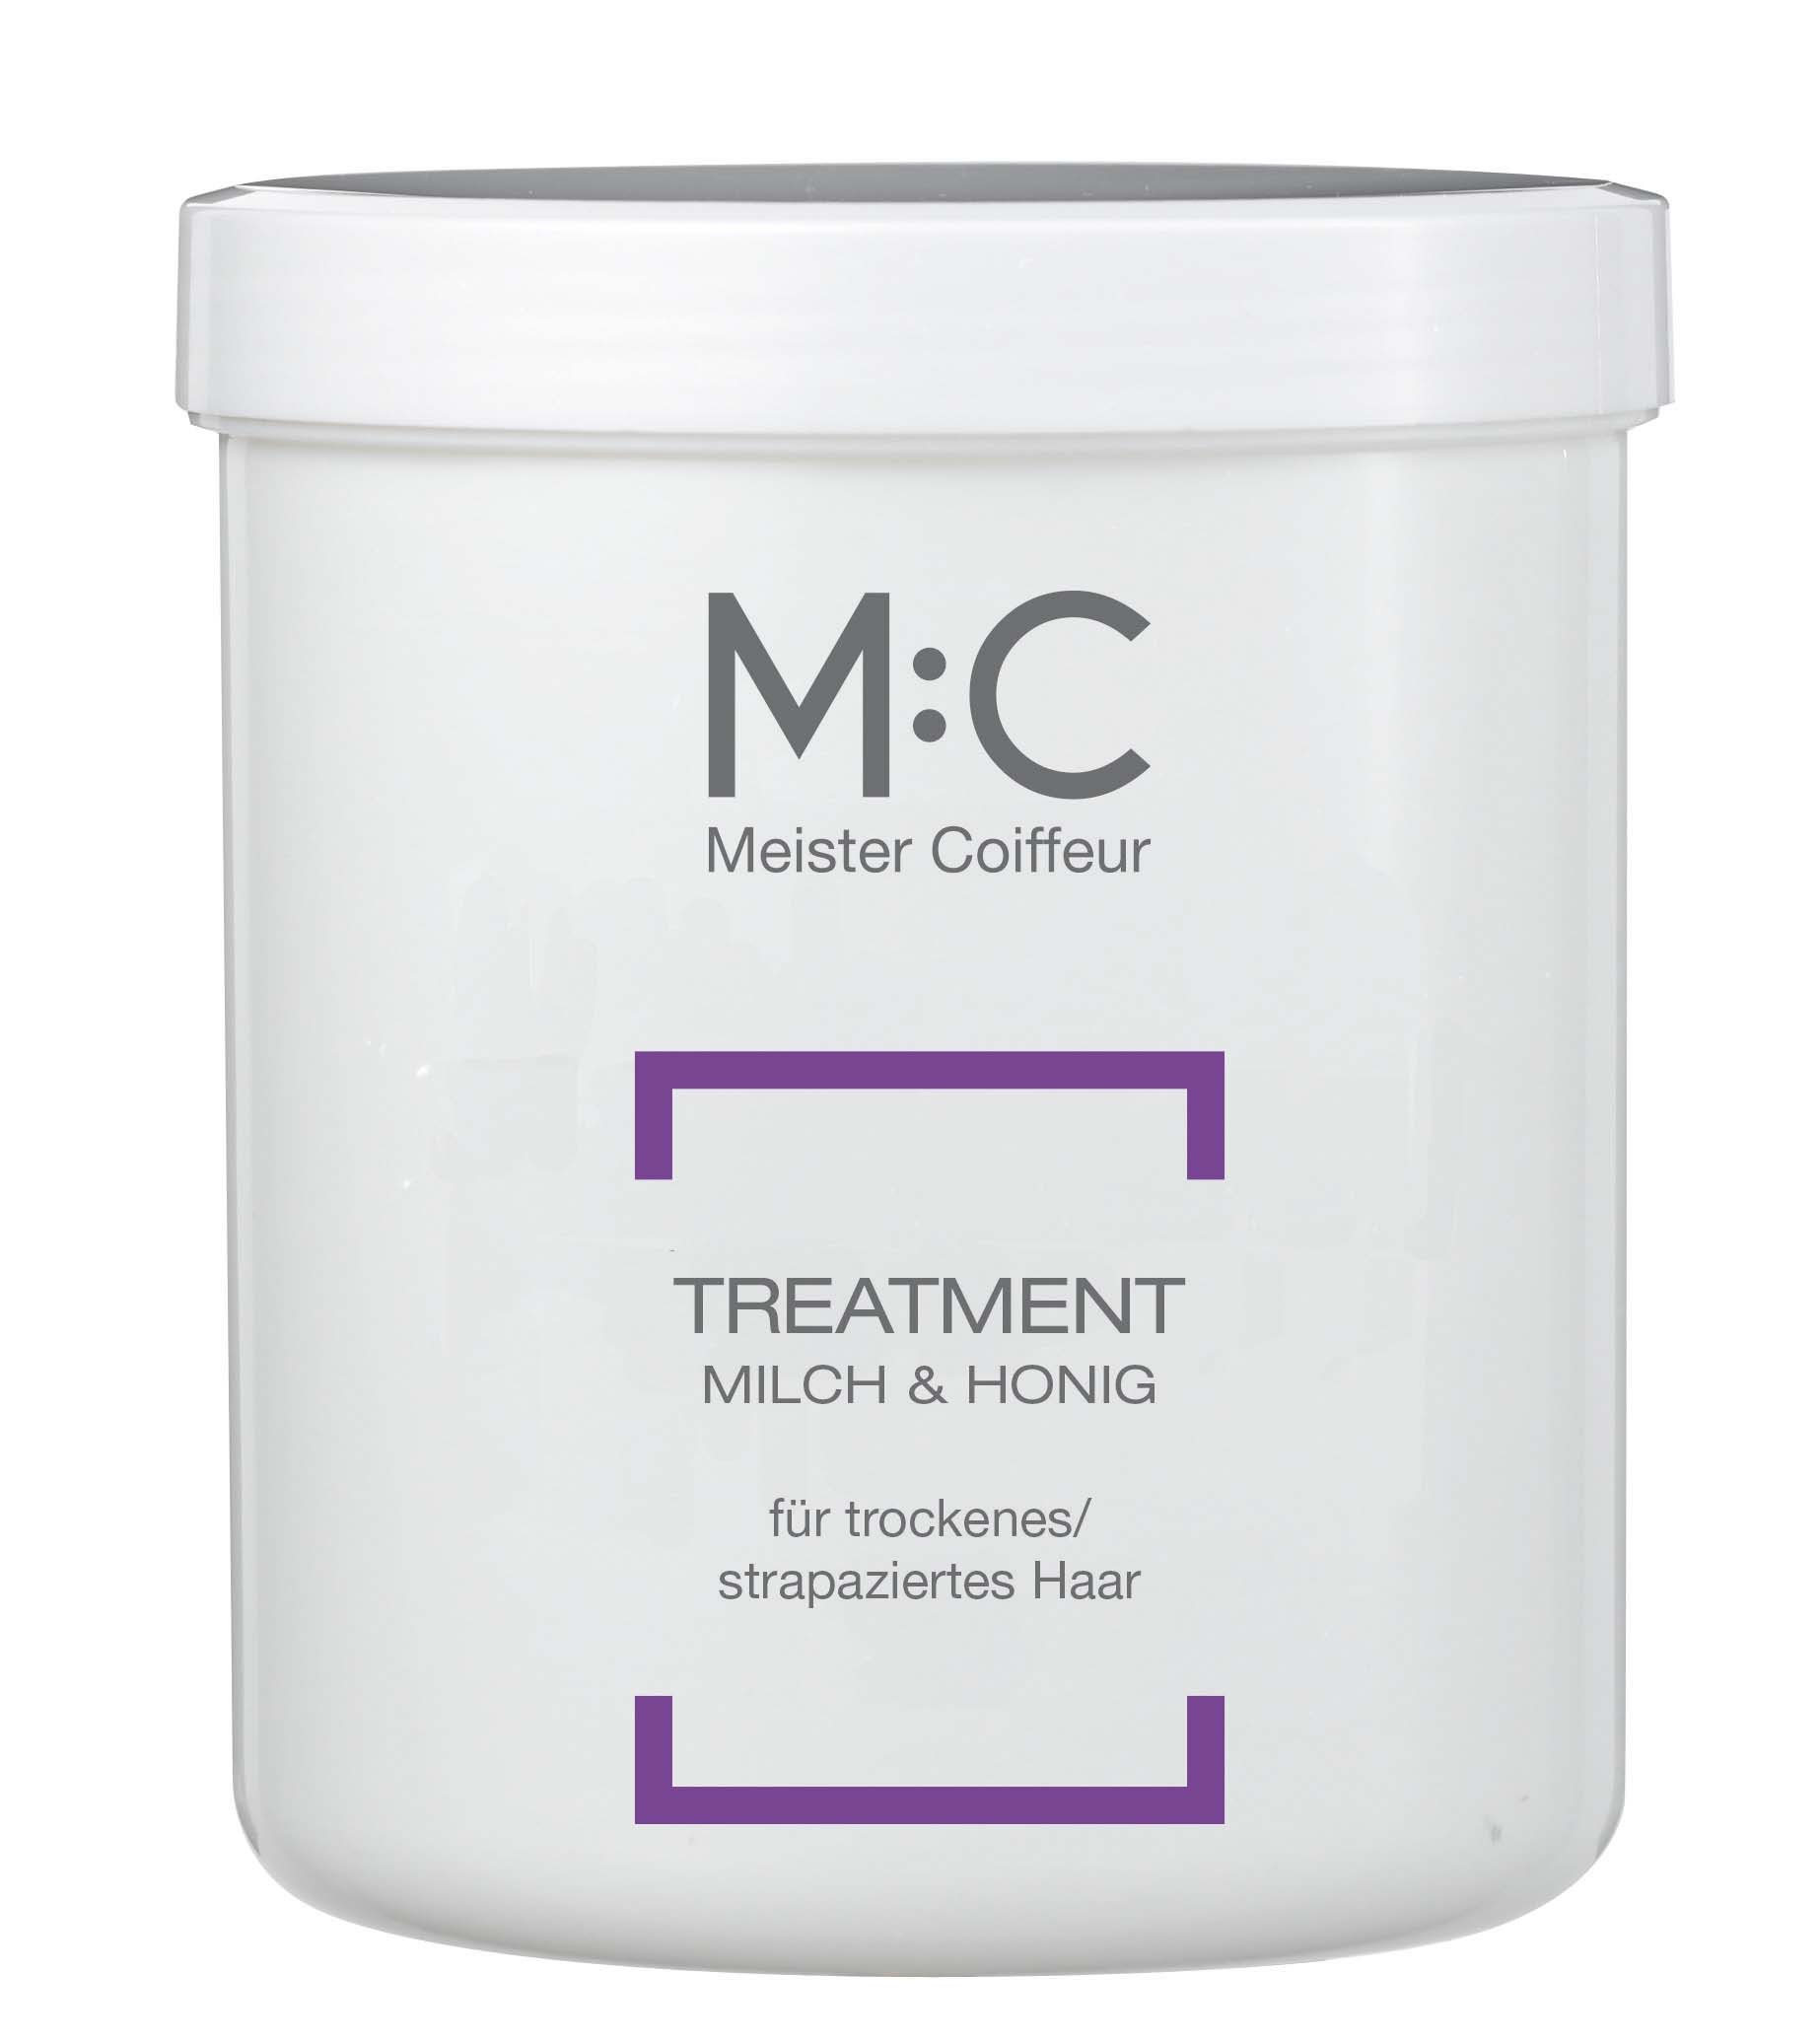 M:C Treatment Lait & Miel T 1.000 ml